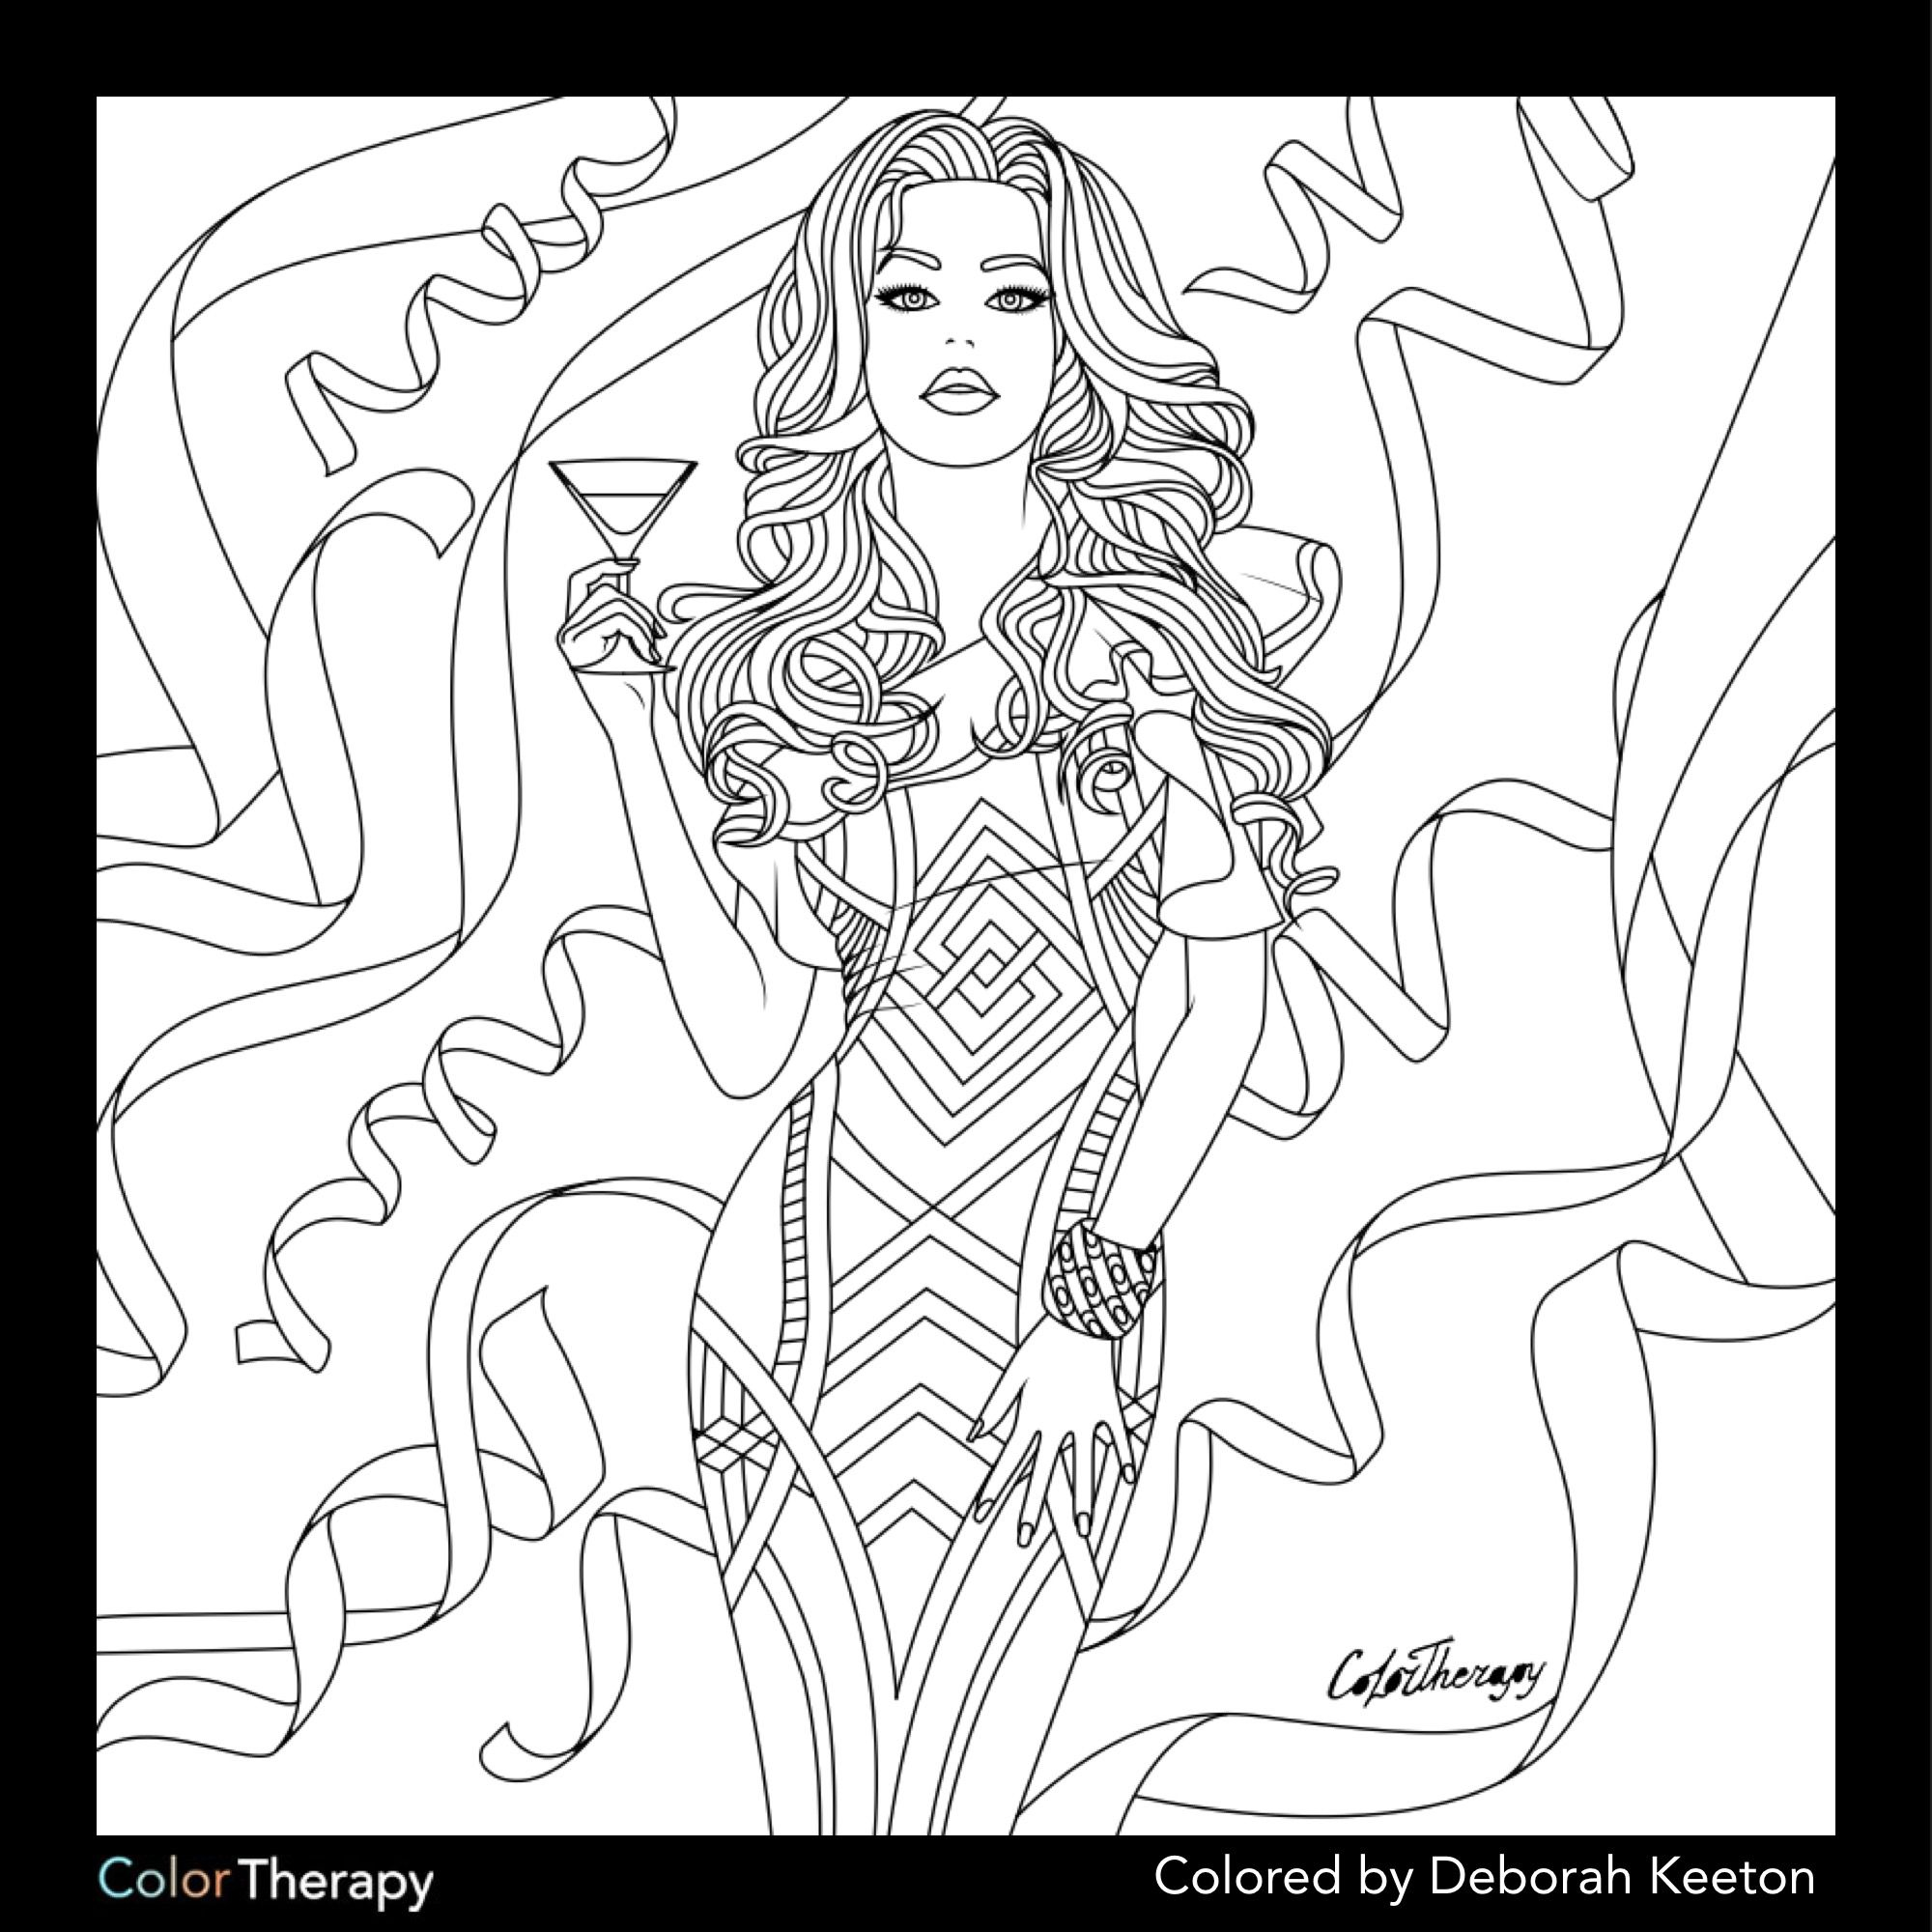 Pin by Deborah Keeton on Coloring pages | Pinterest | Coloring books ...